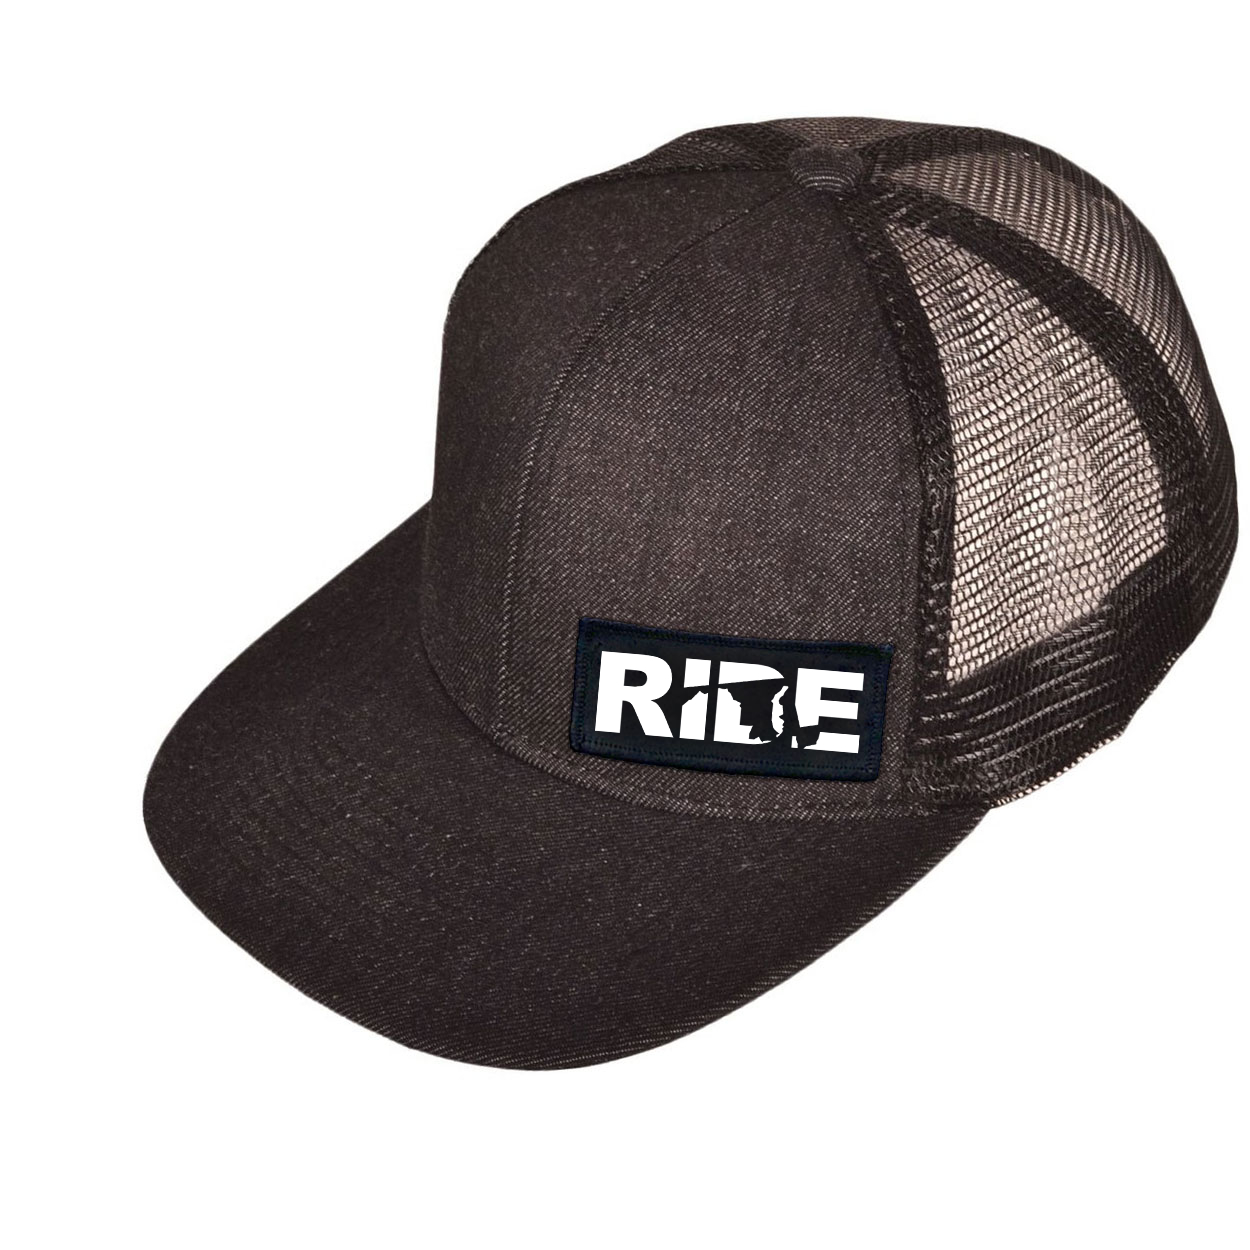 Ride Maryland Night Out Woven Patch Snapback Flat Brim Hat Black Denim (White Logo)